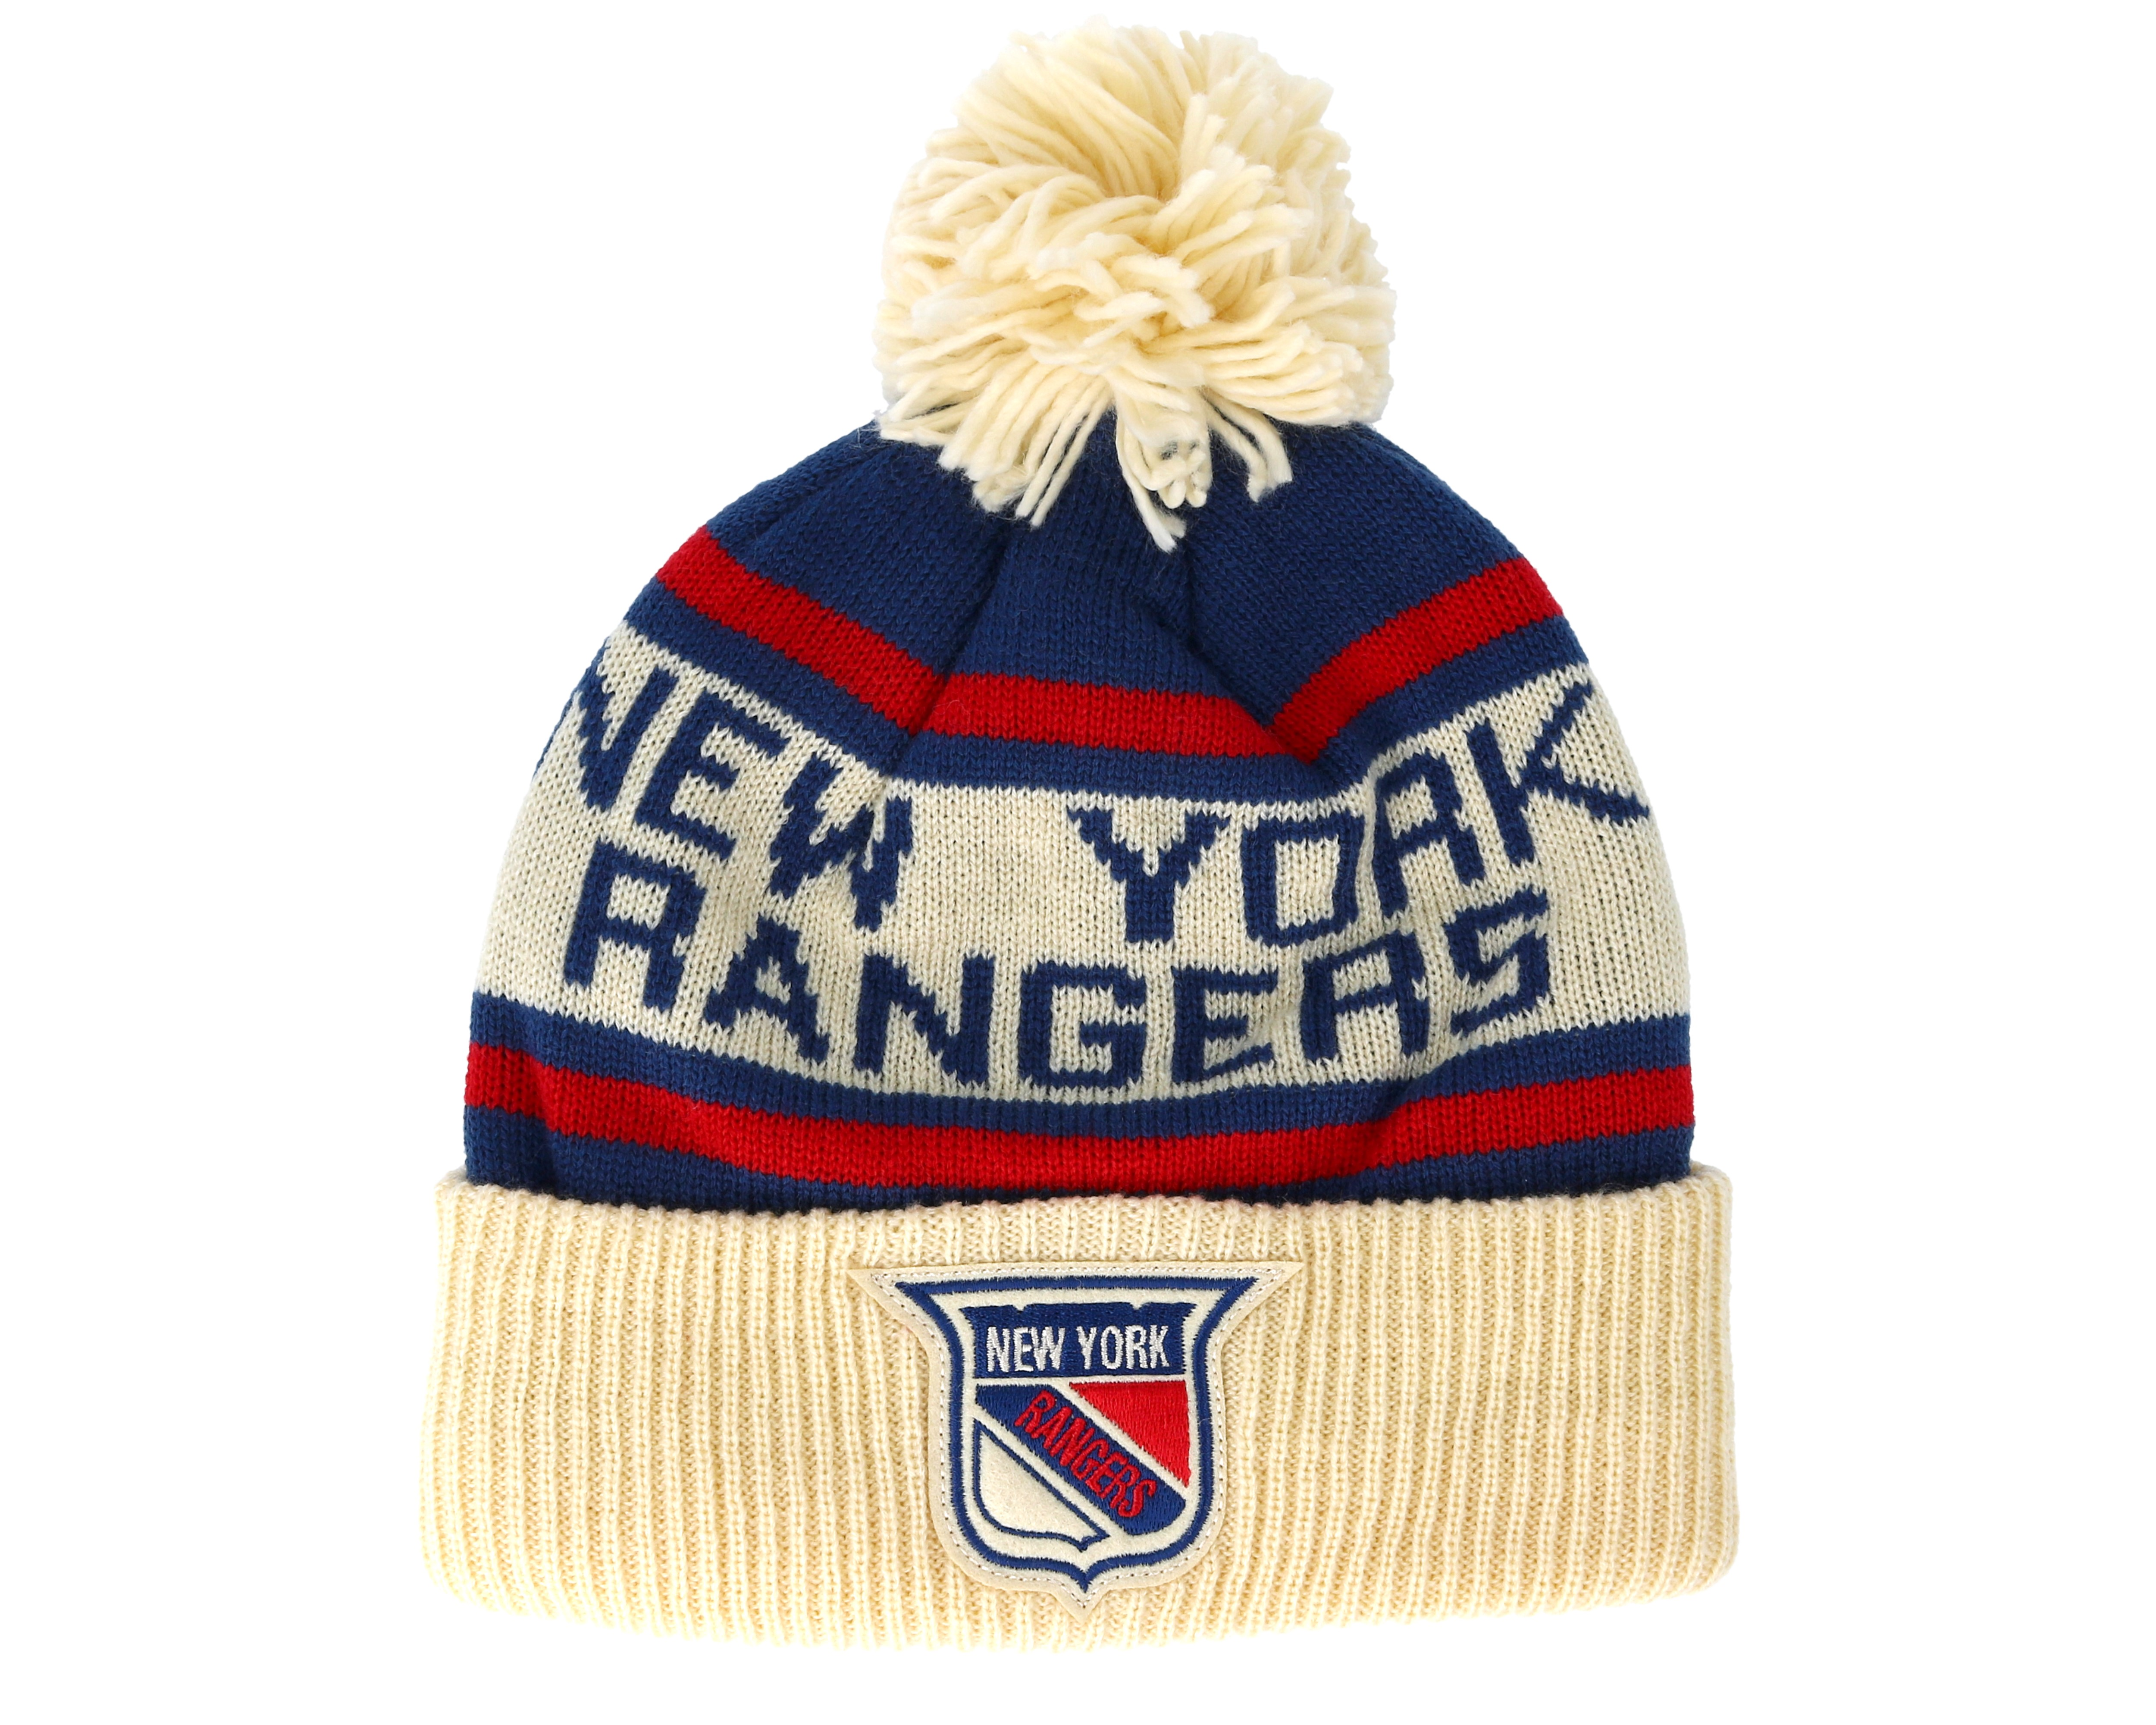 super popular 40fe9 4dc2f discount code for new york rangers cuffed knit natural blue red pom adidas  beanies 5456e e601c